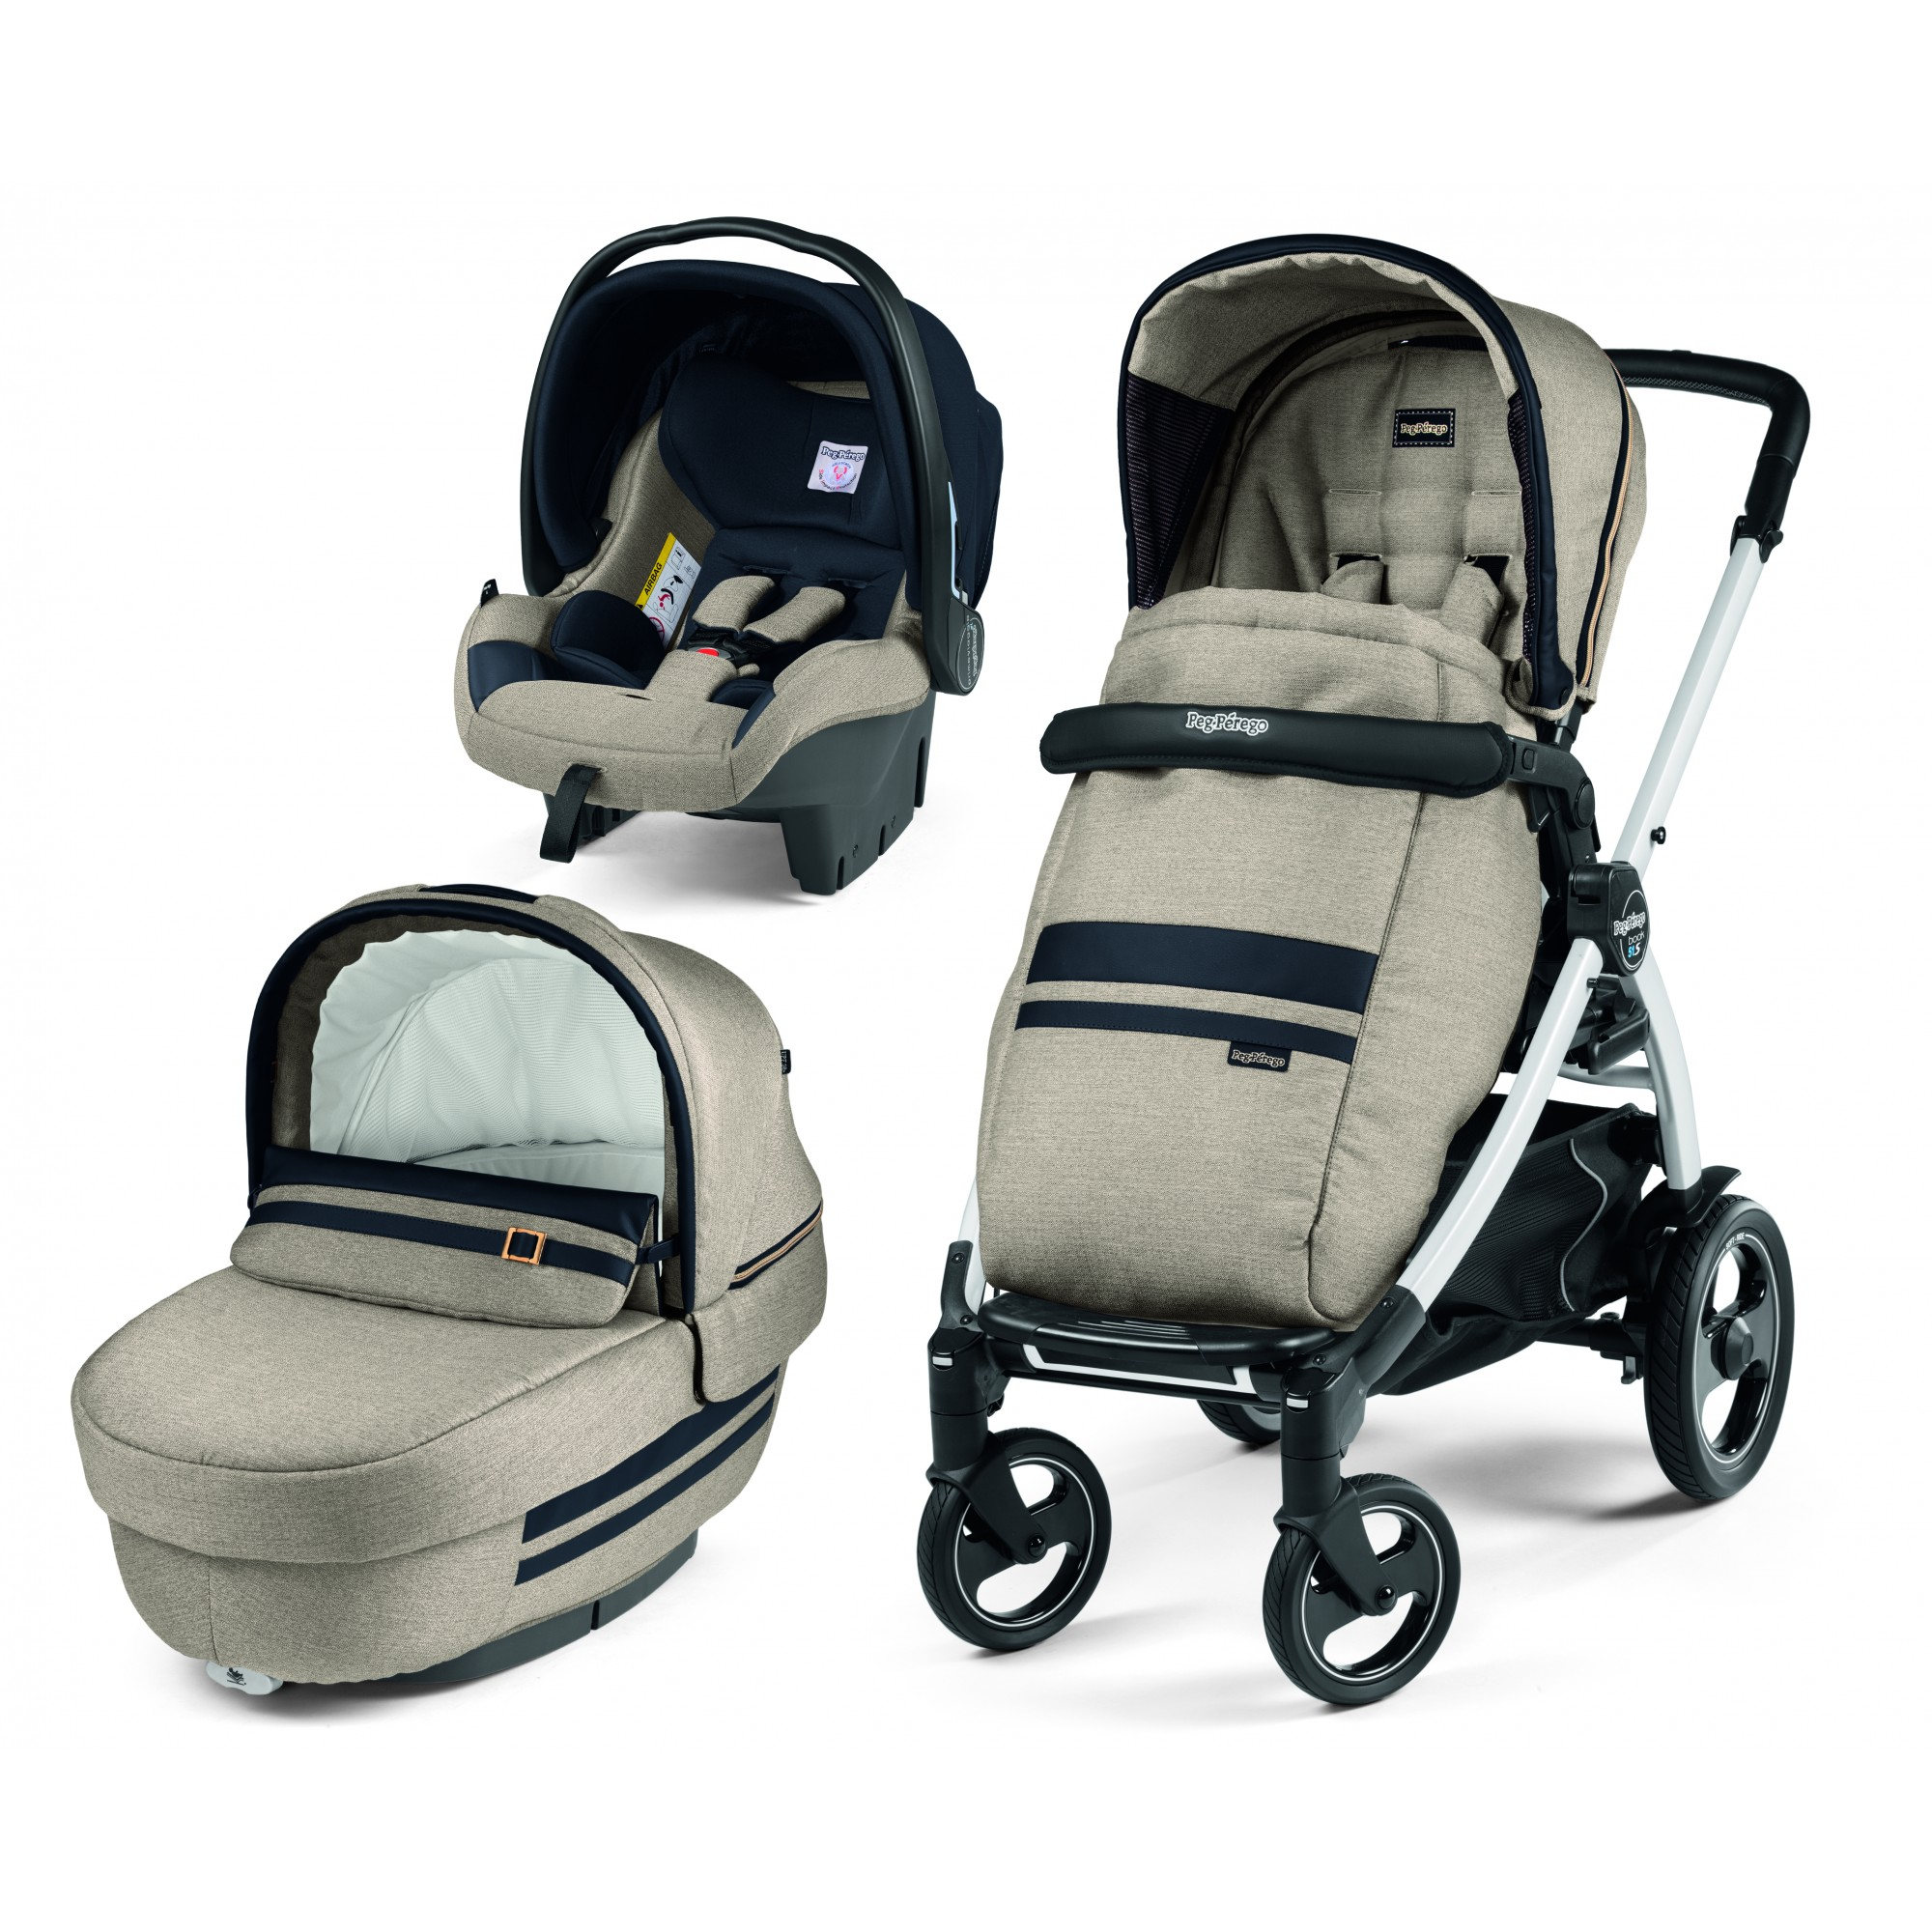 Carucior 3 In 1, Peg Perego, Book Plus 51 S, Titania White, Luxe Ecru